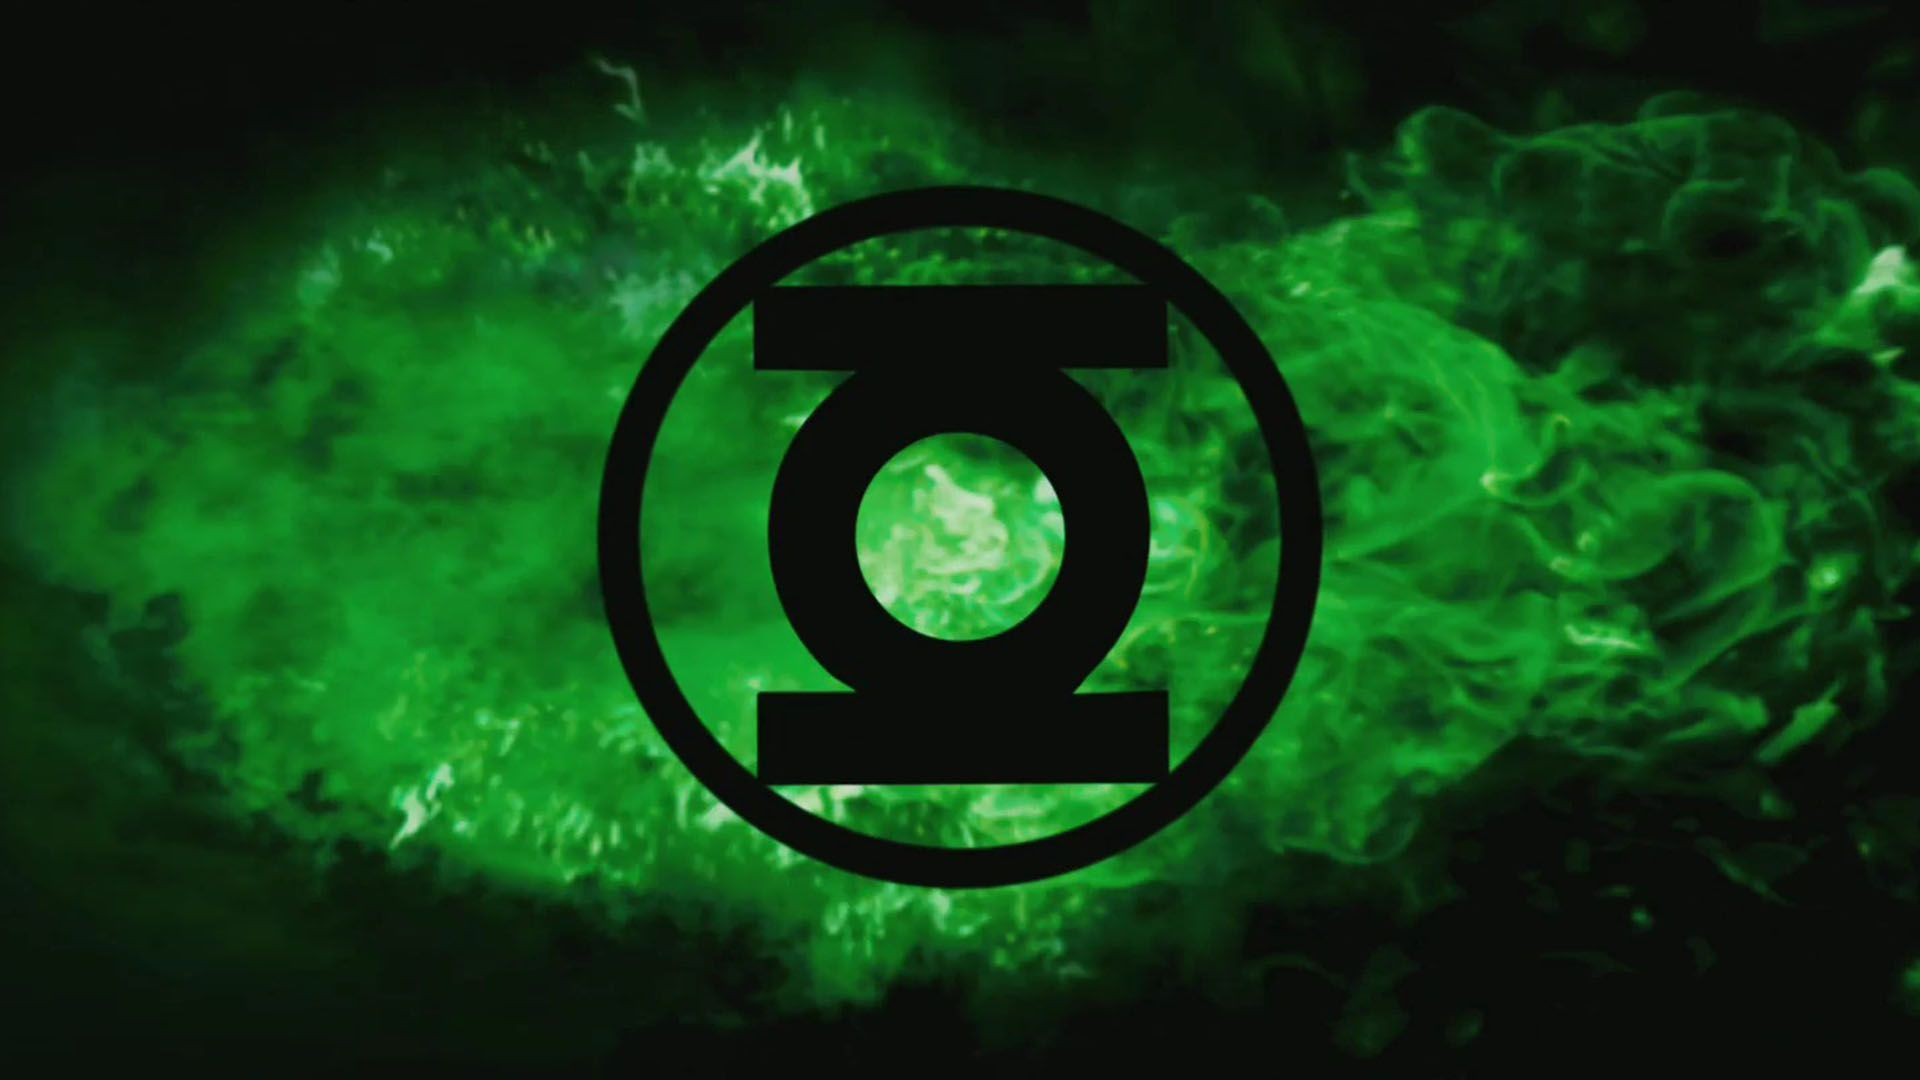 Green Lantern Wallpaper 1920x1080 Need Iphone 6s Plus Wallpaper Background For Iphone6splus Green Lantern Wallpaper Green Lantern Logo Green Lantern